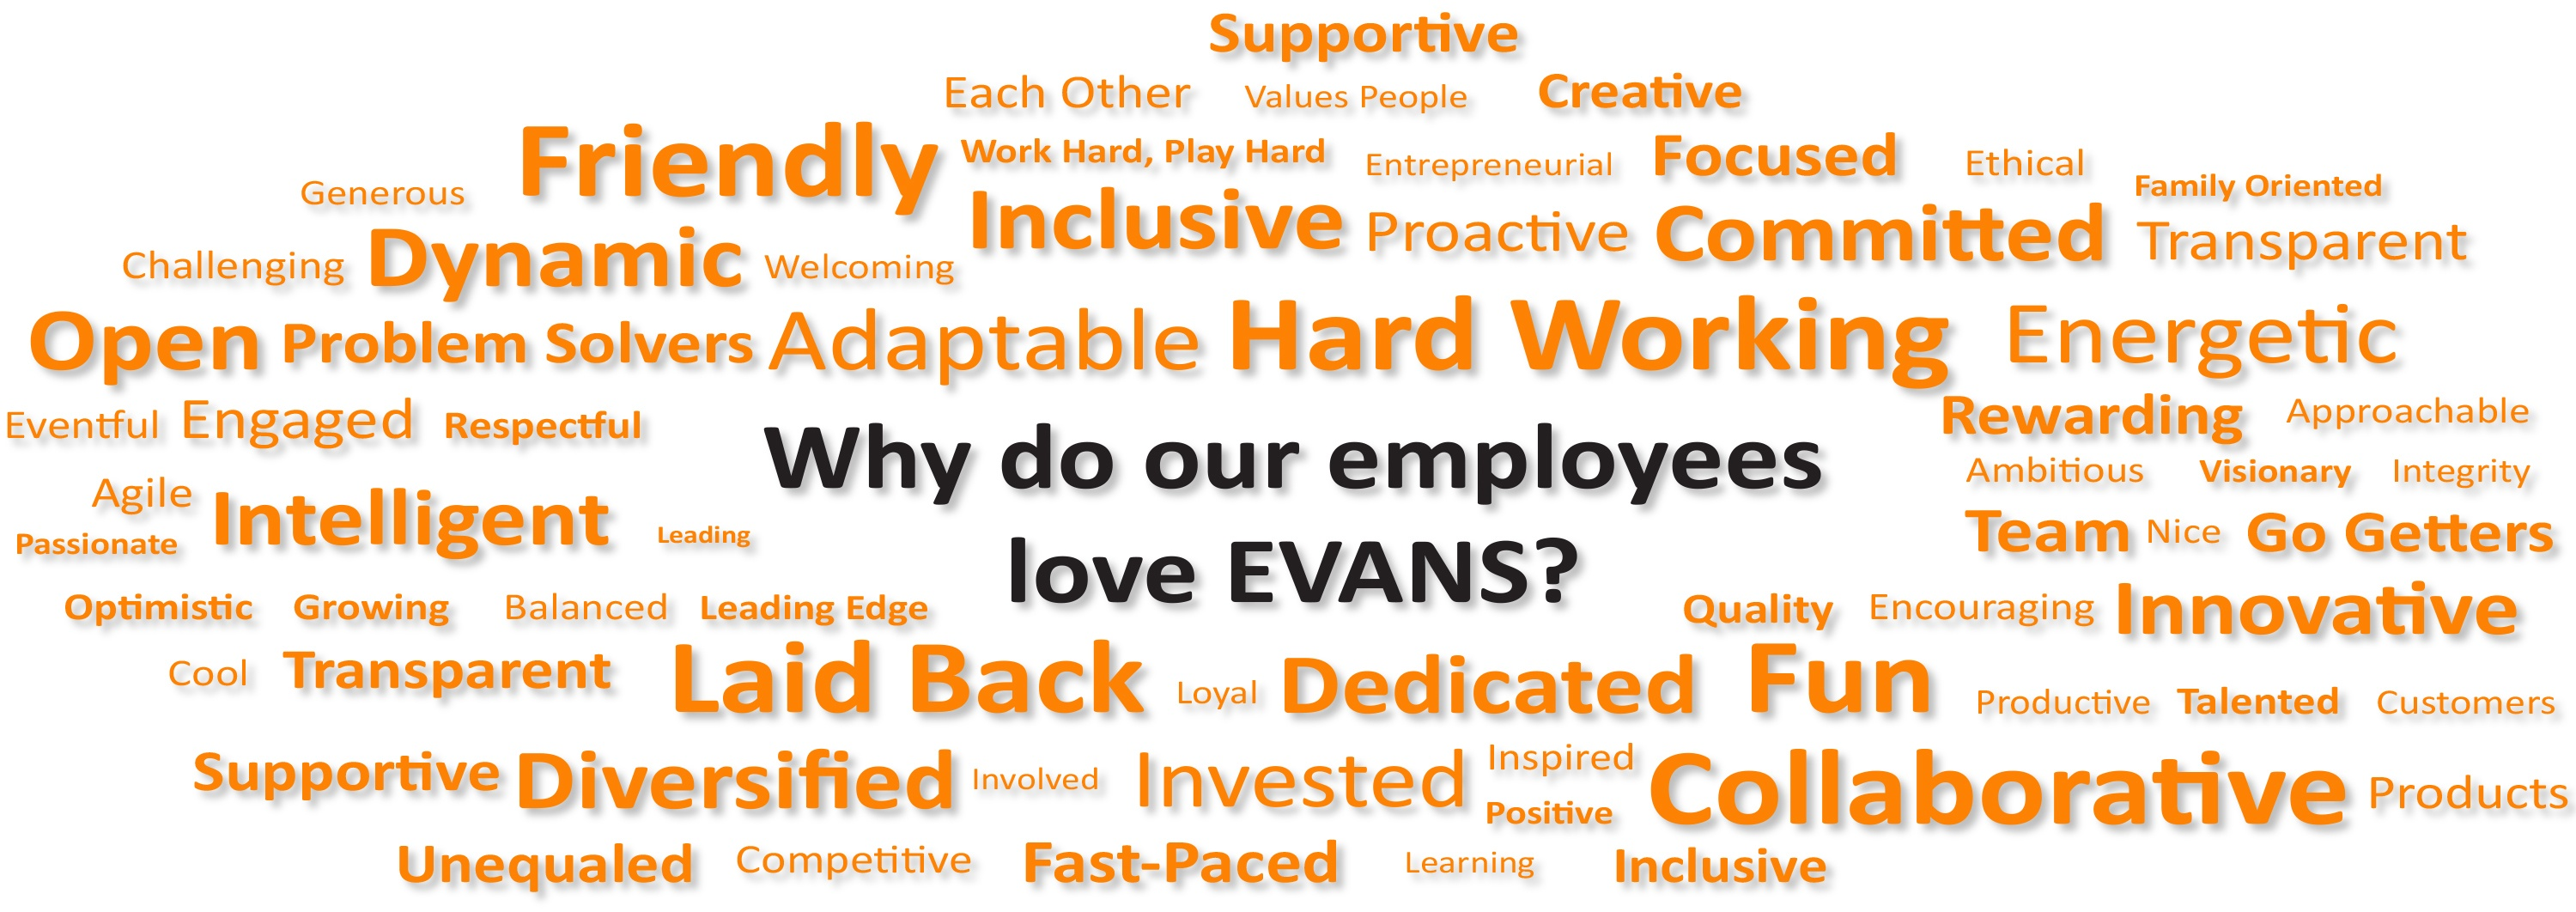 employees-love-evans-3000x1062.jpg